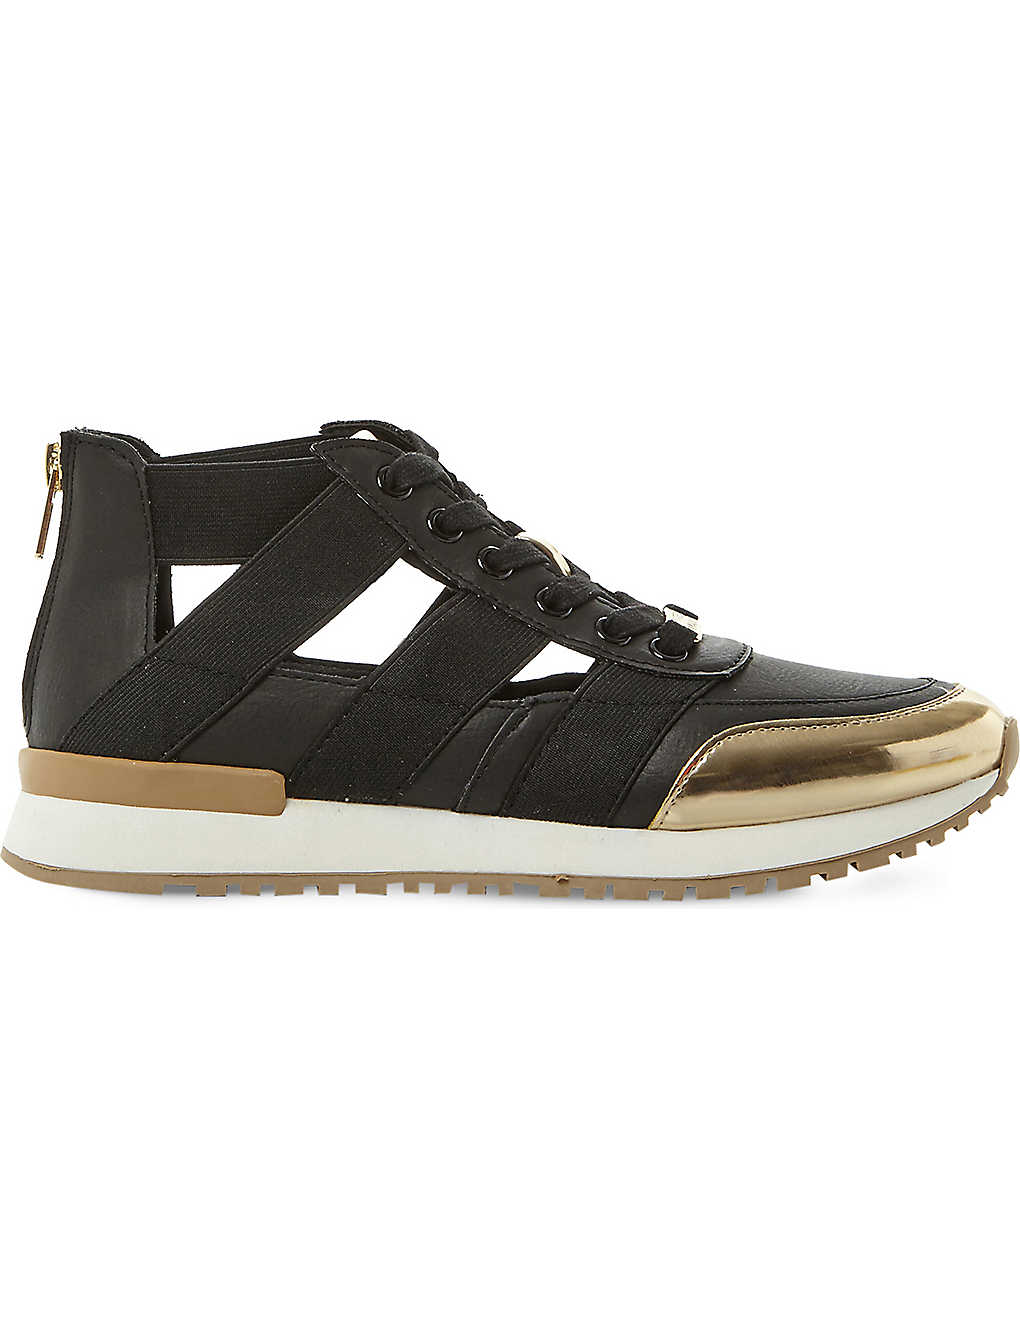 Trainers Trinity Madden Cutout Trainers Steve Steve Trinity Trinity Steve Cutout Madden Madden mnvPN0Owy8